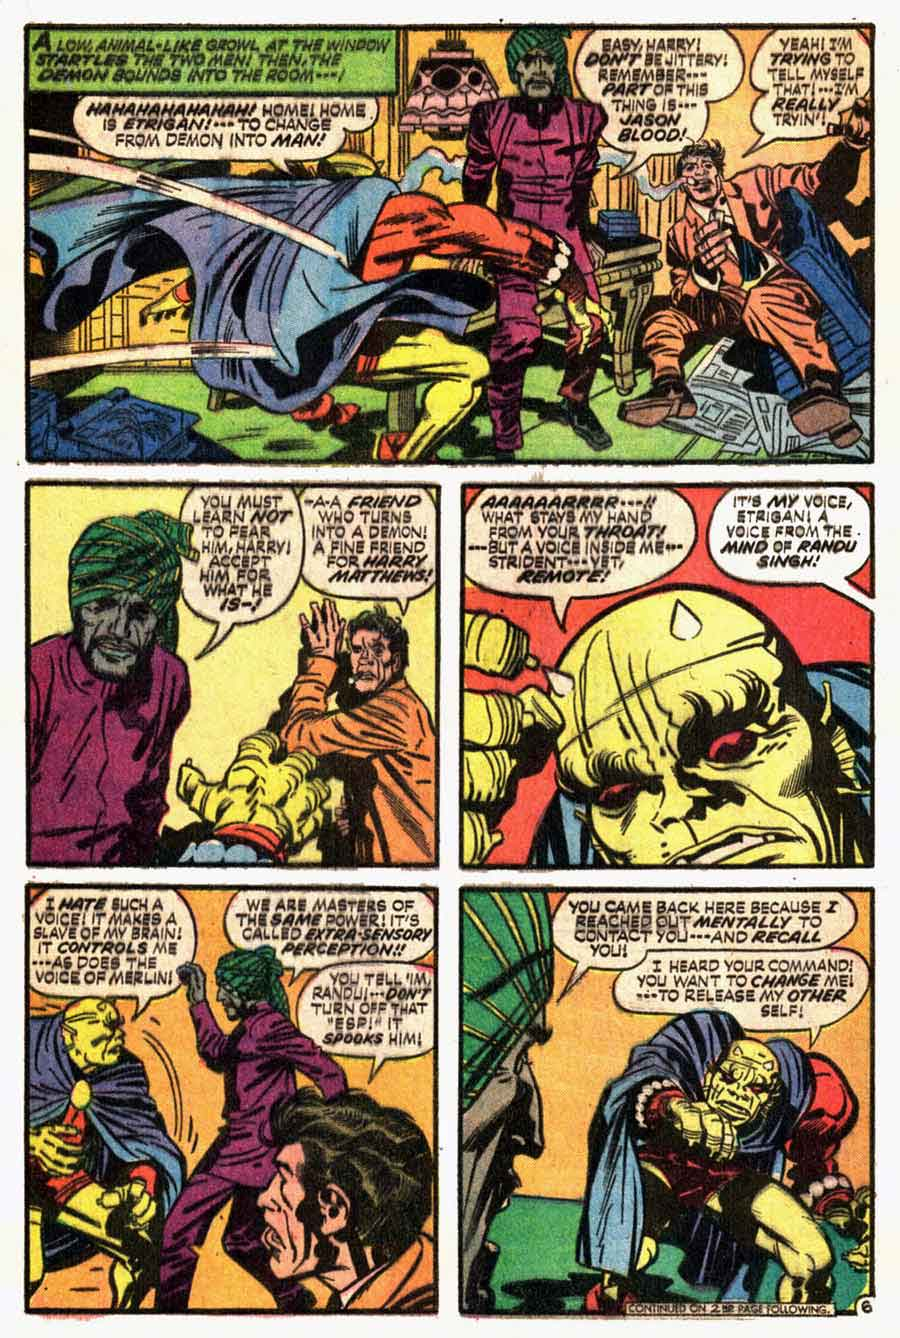 Demon v1 #4 dc bronze age comic book page art by Jack Kirby